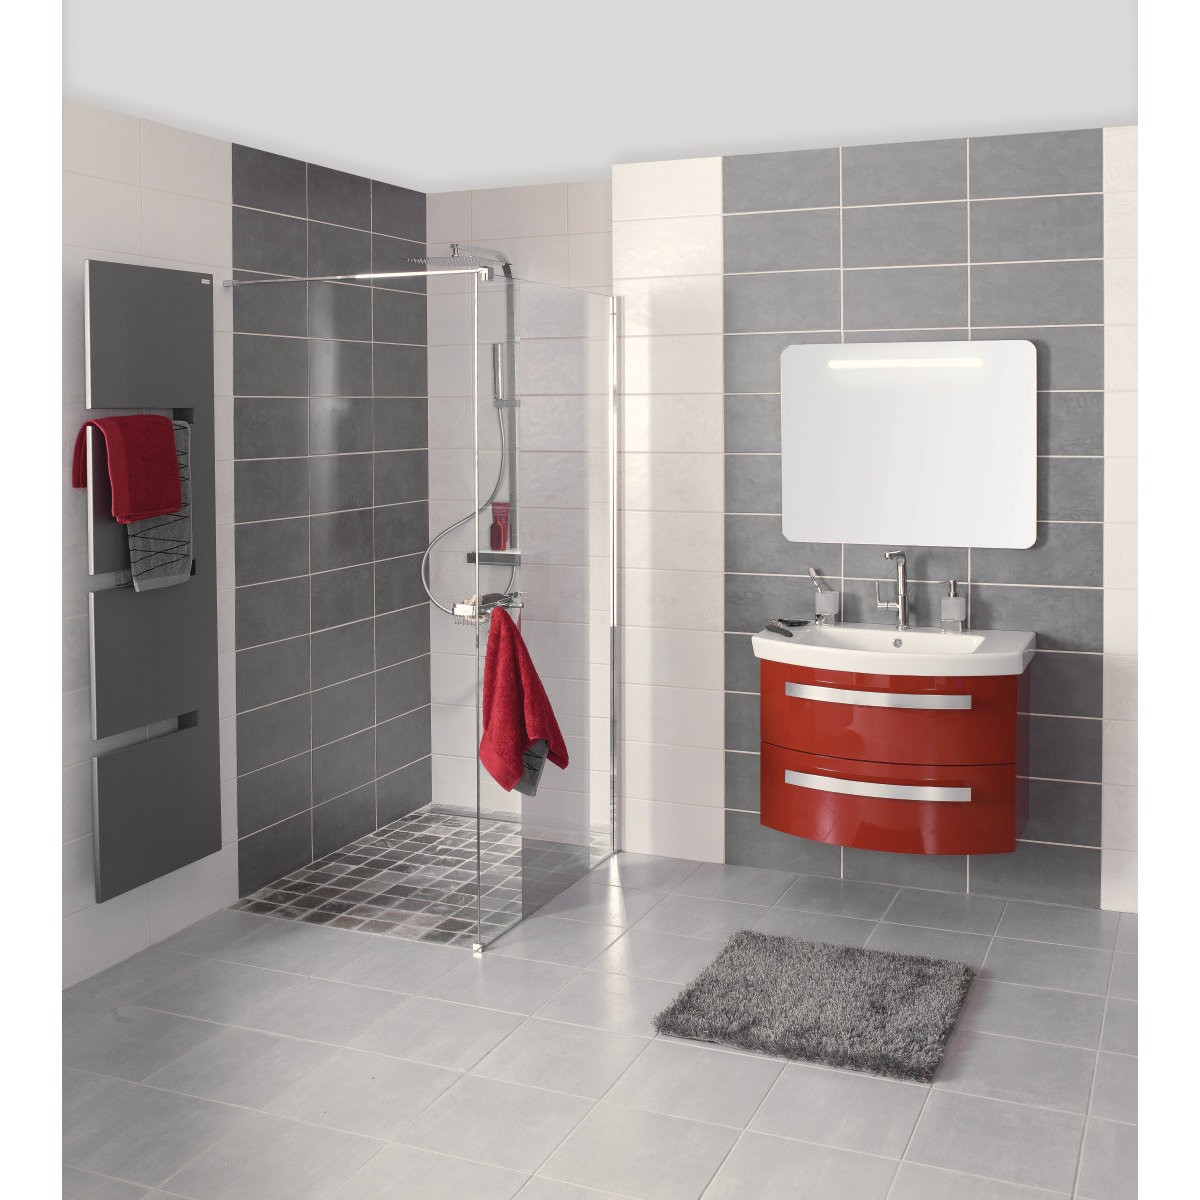 Carrelage point p catalogue id es de conception sont int ressants votre d cor for Idee pose carrelage salle de bain